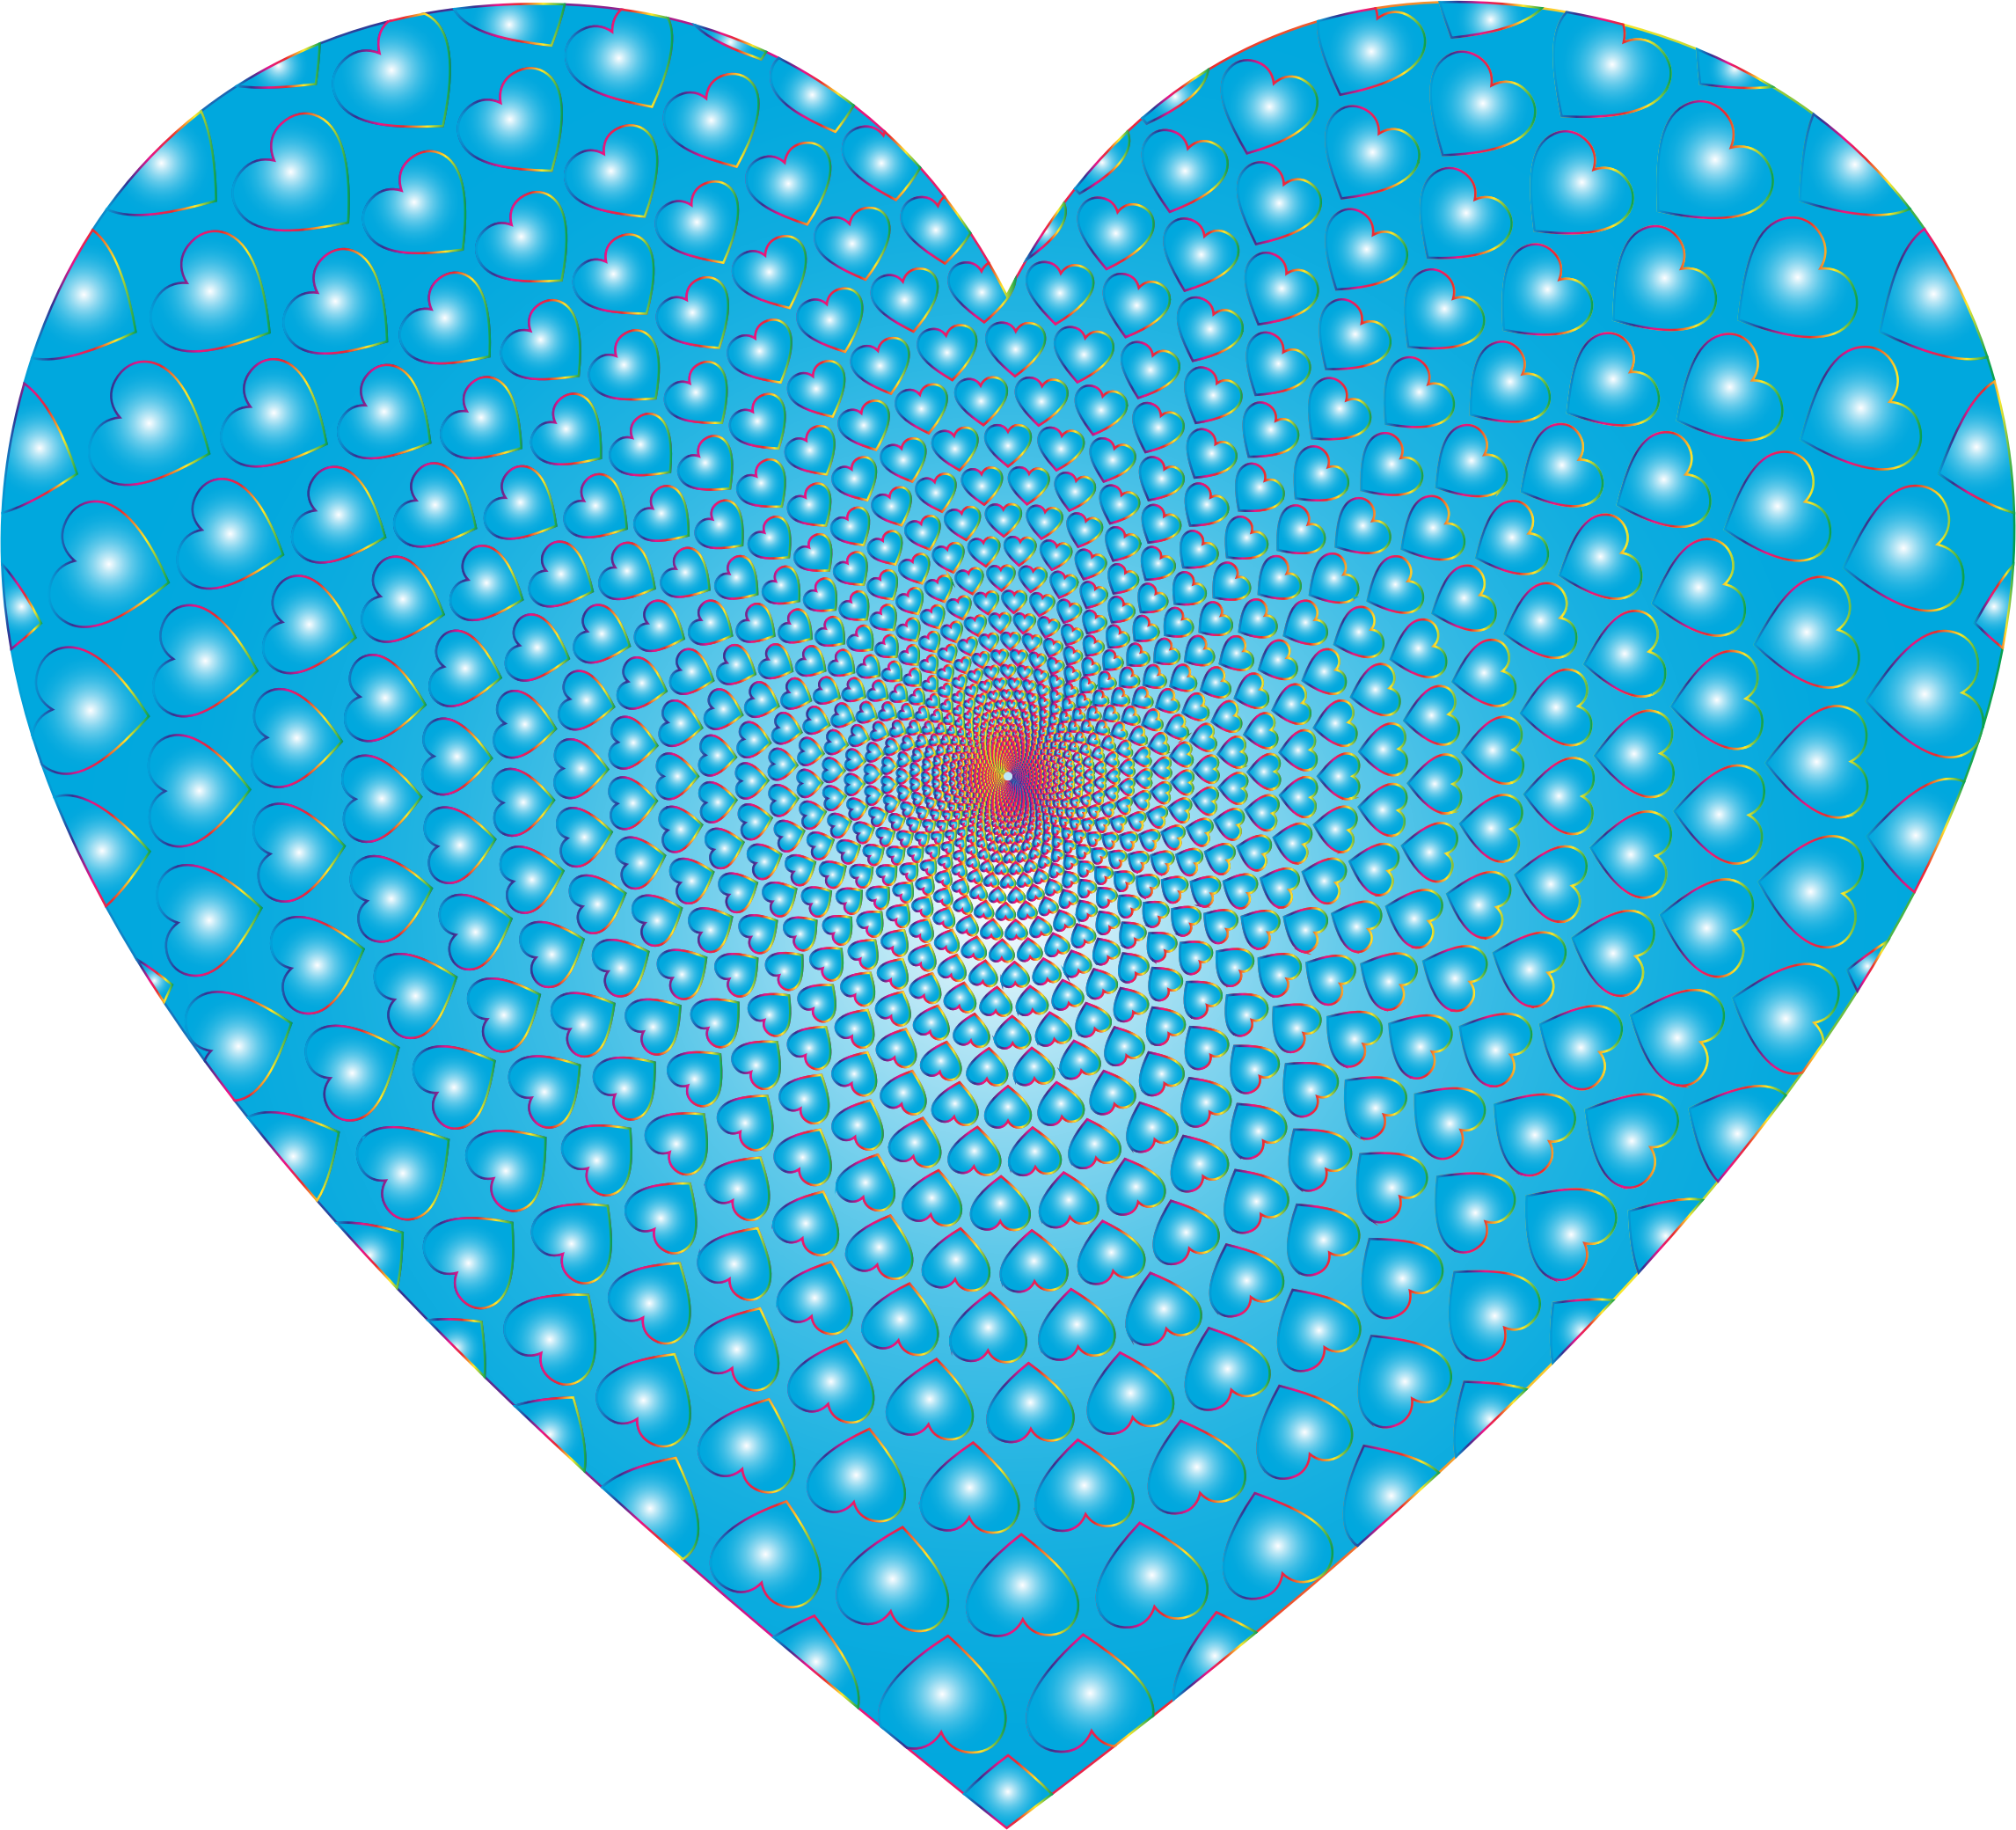 Prismatic Hearts Vortex Heart 9 by GDJ